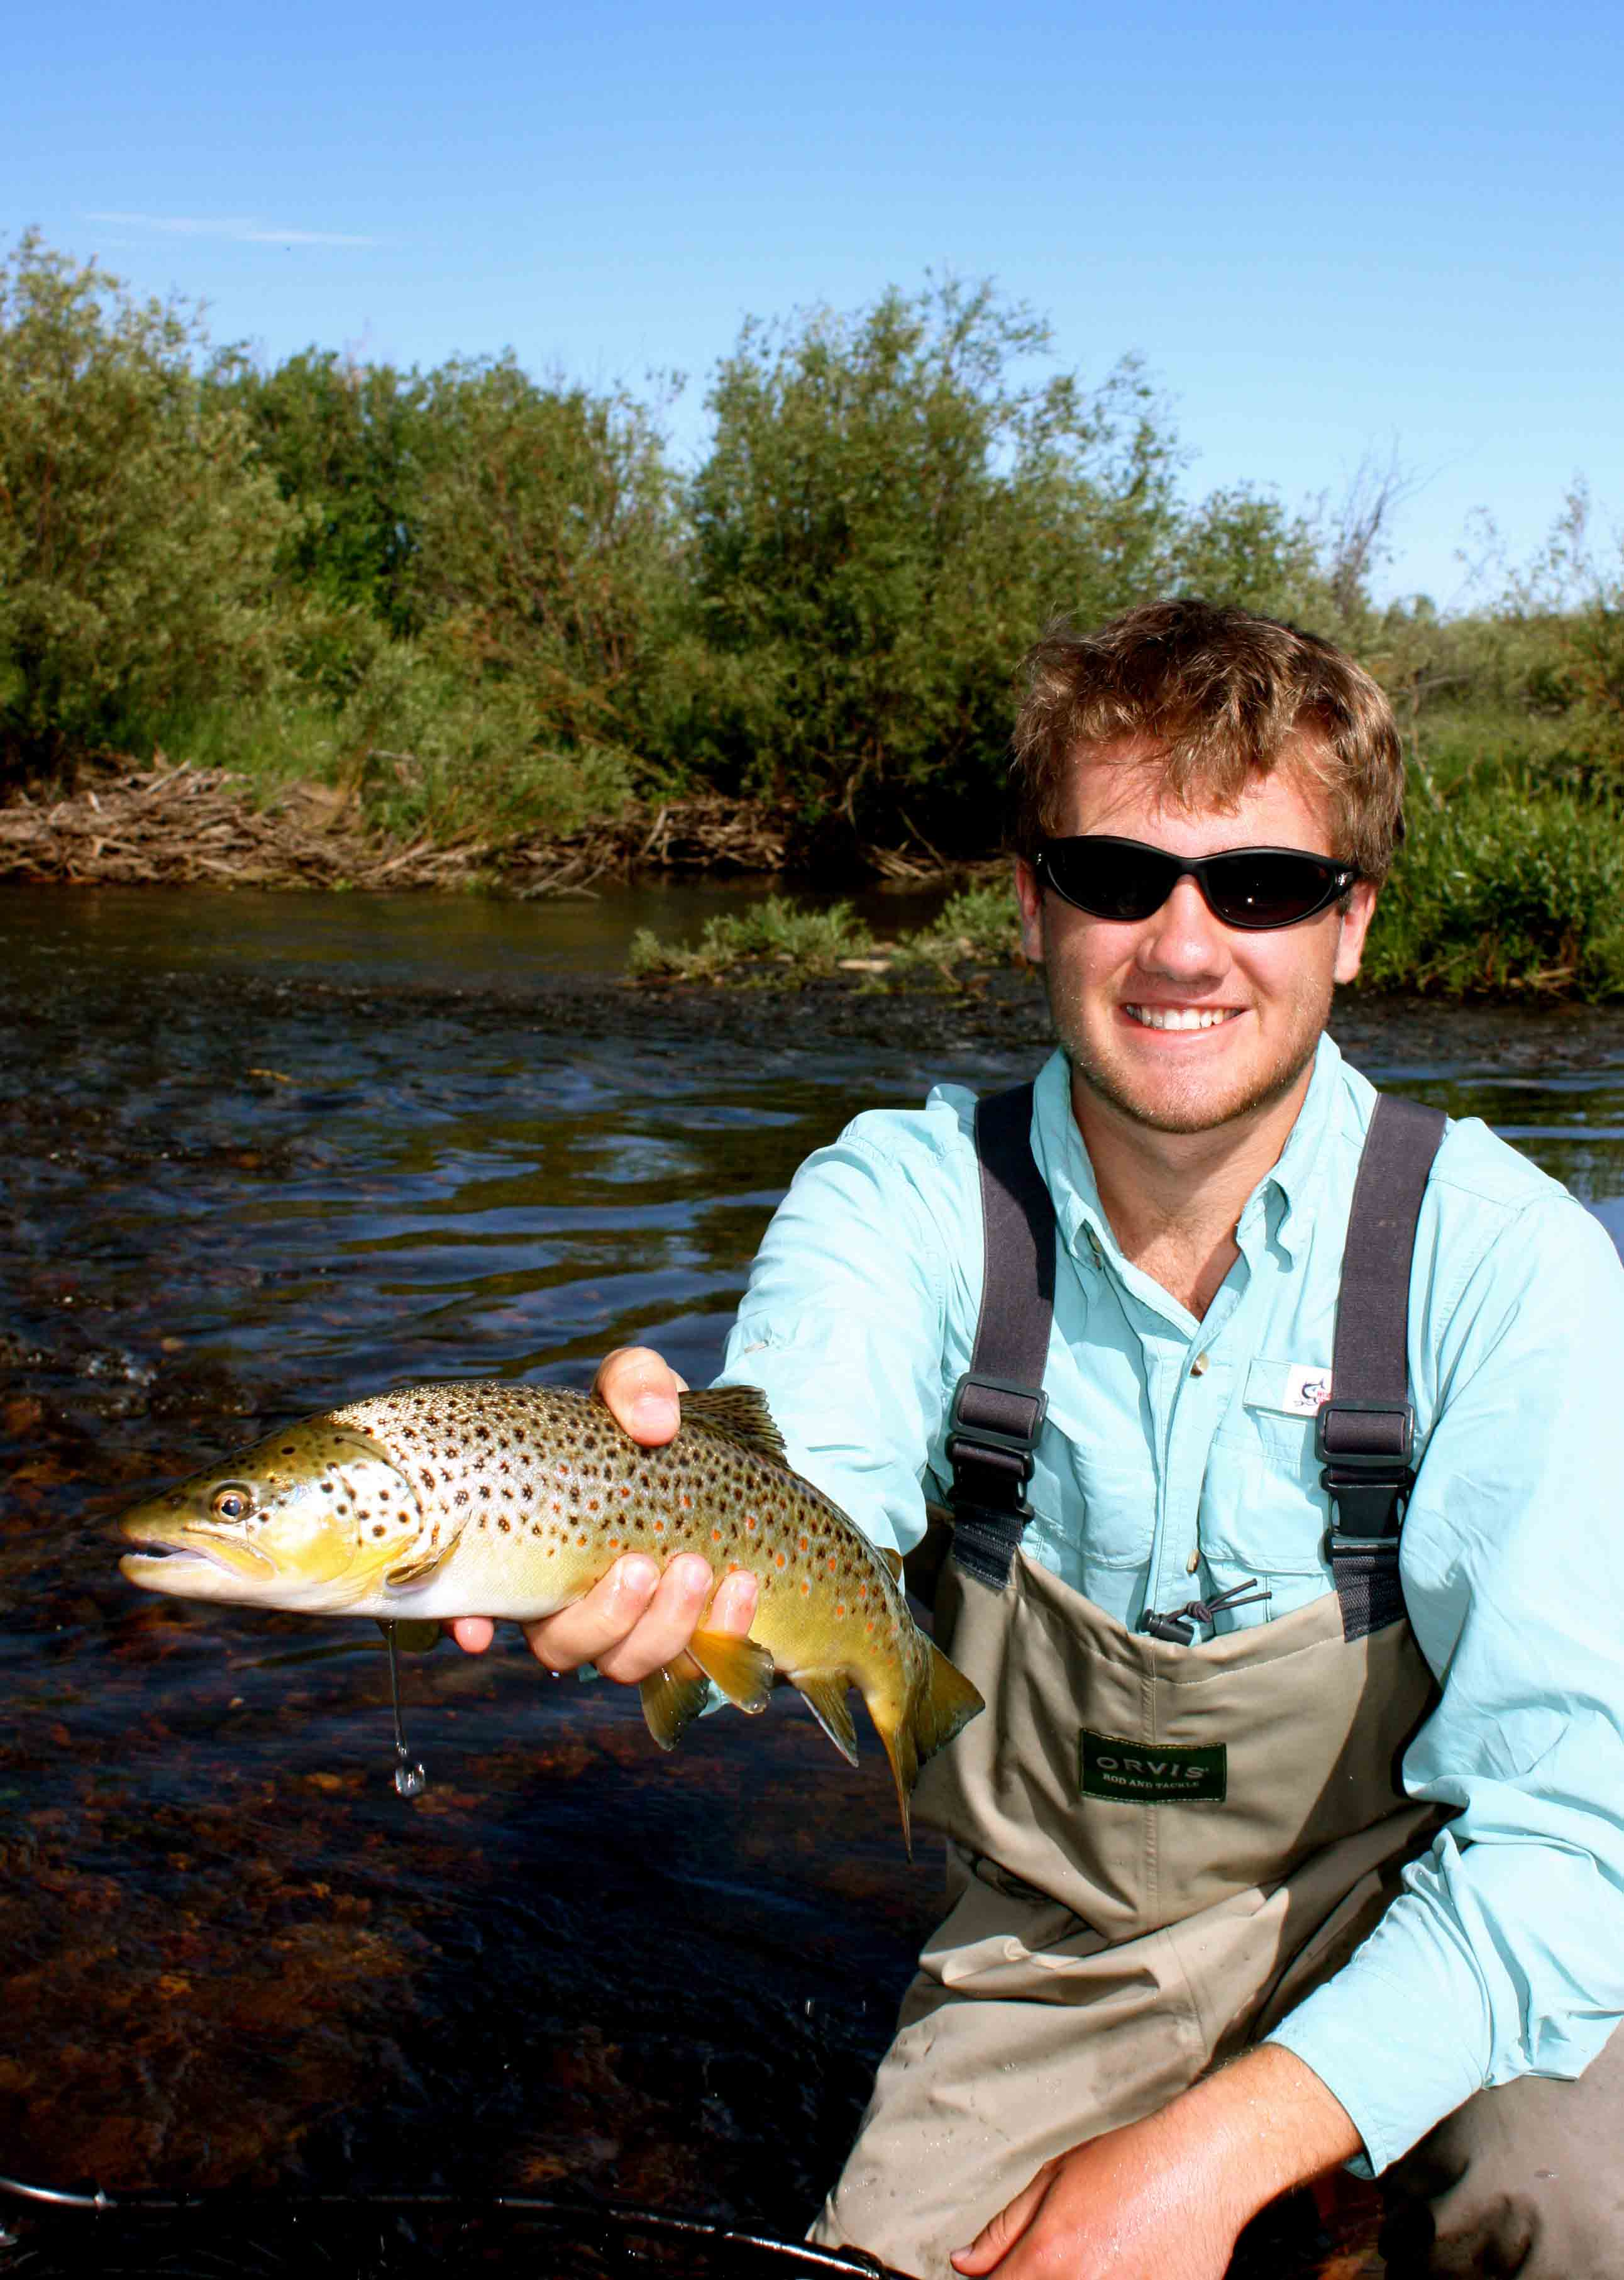 North platte river fly fishing buffalocreek for Trout fishing illinois